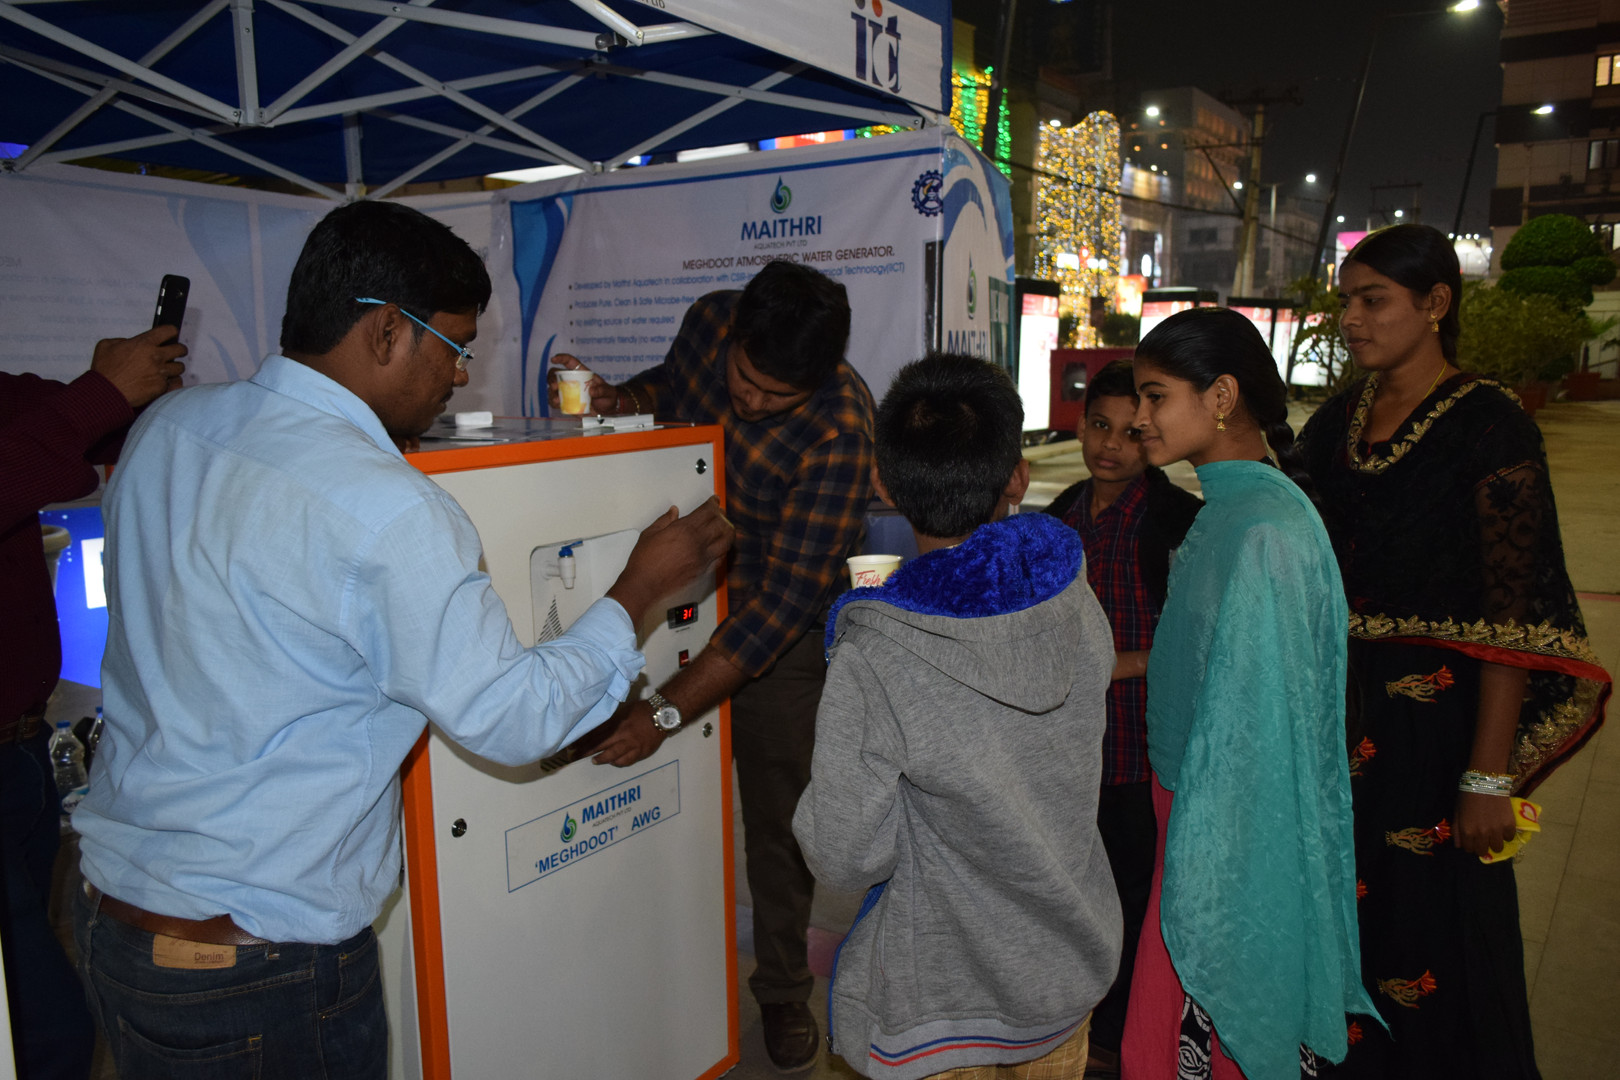 People lining up to drink water from MEGHDOOT-100 at PVP Square Mall, Vijayawada, Andhra Pradesh.